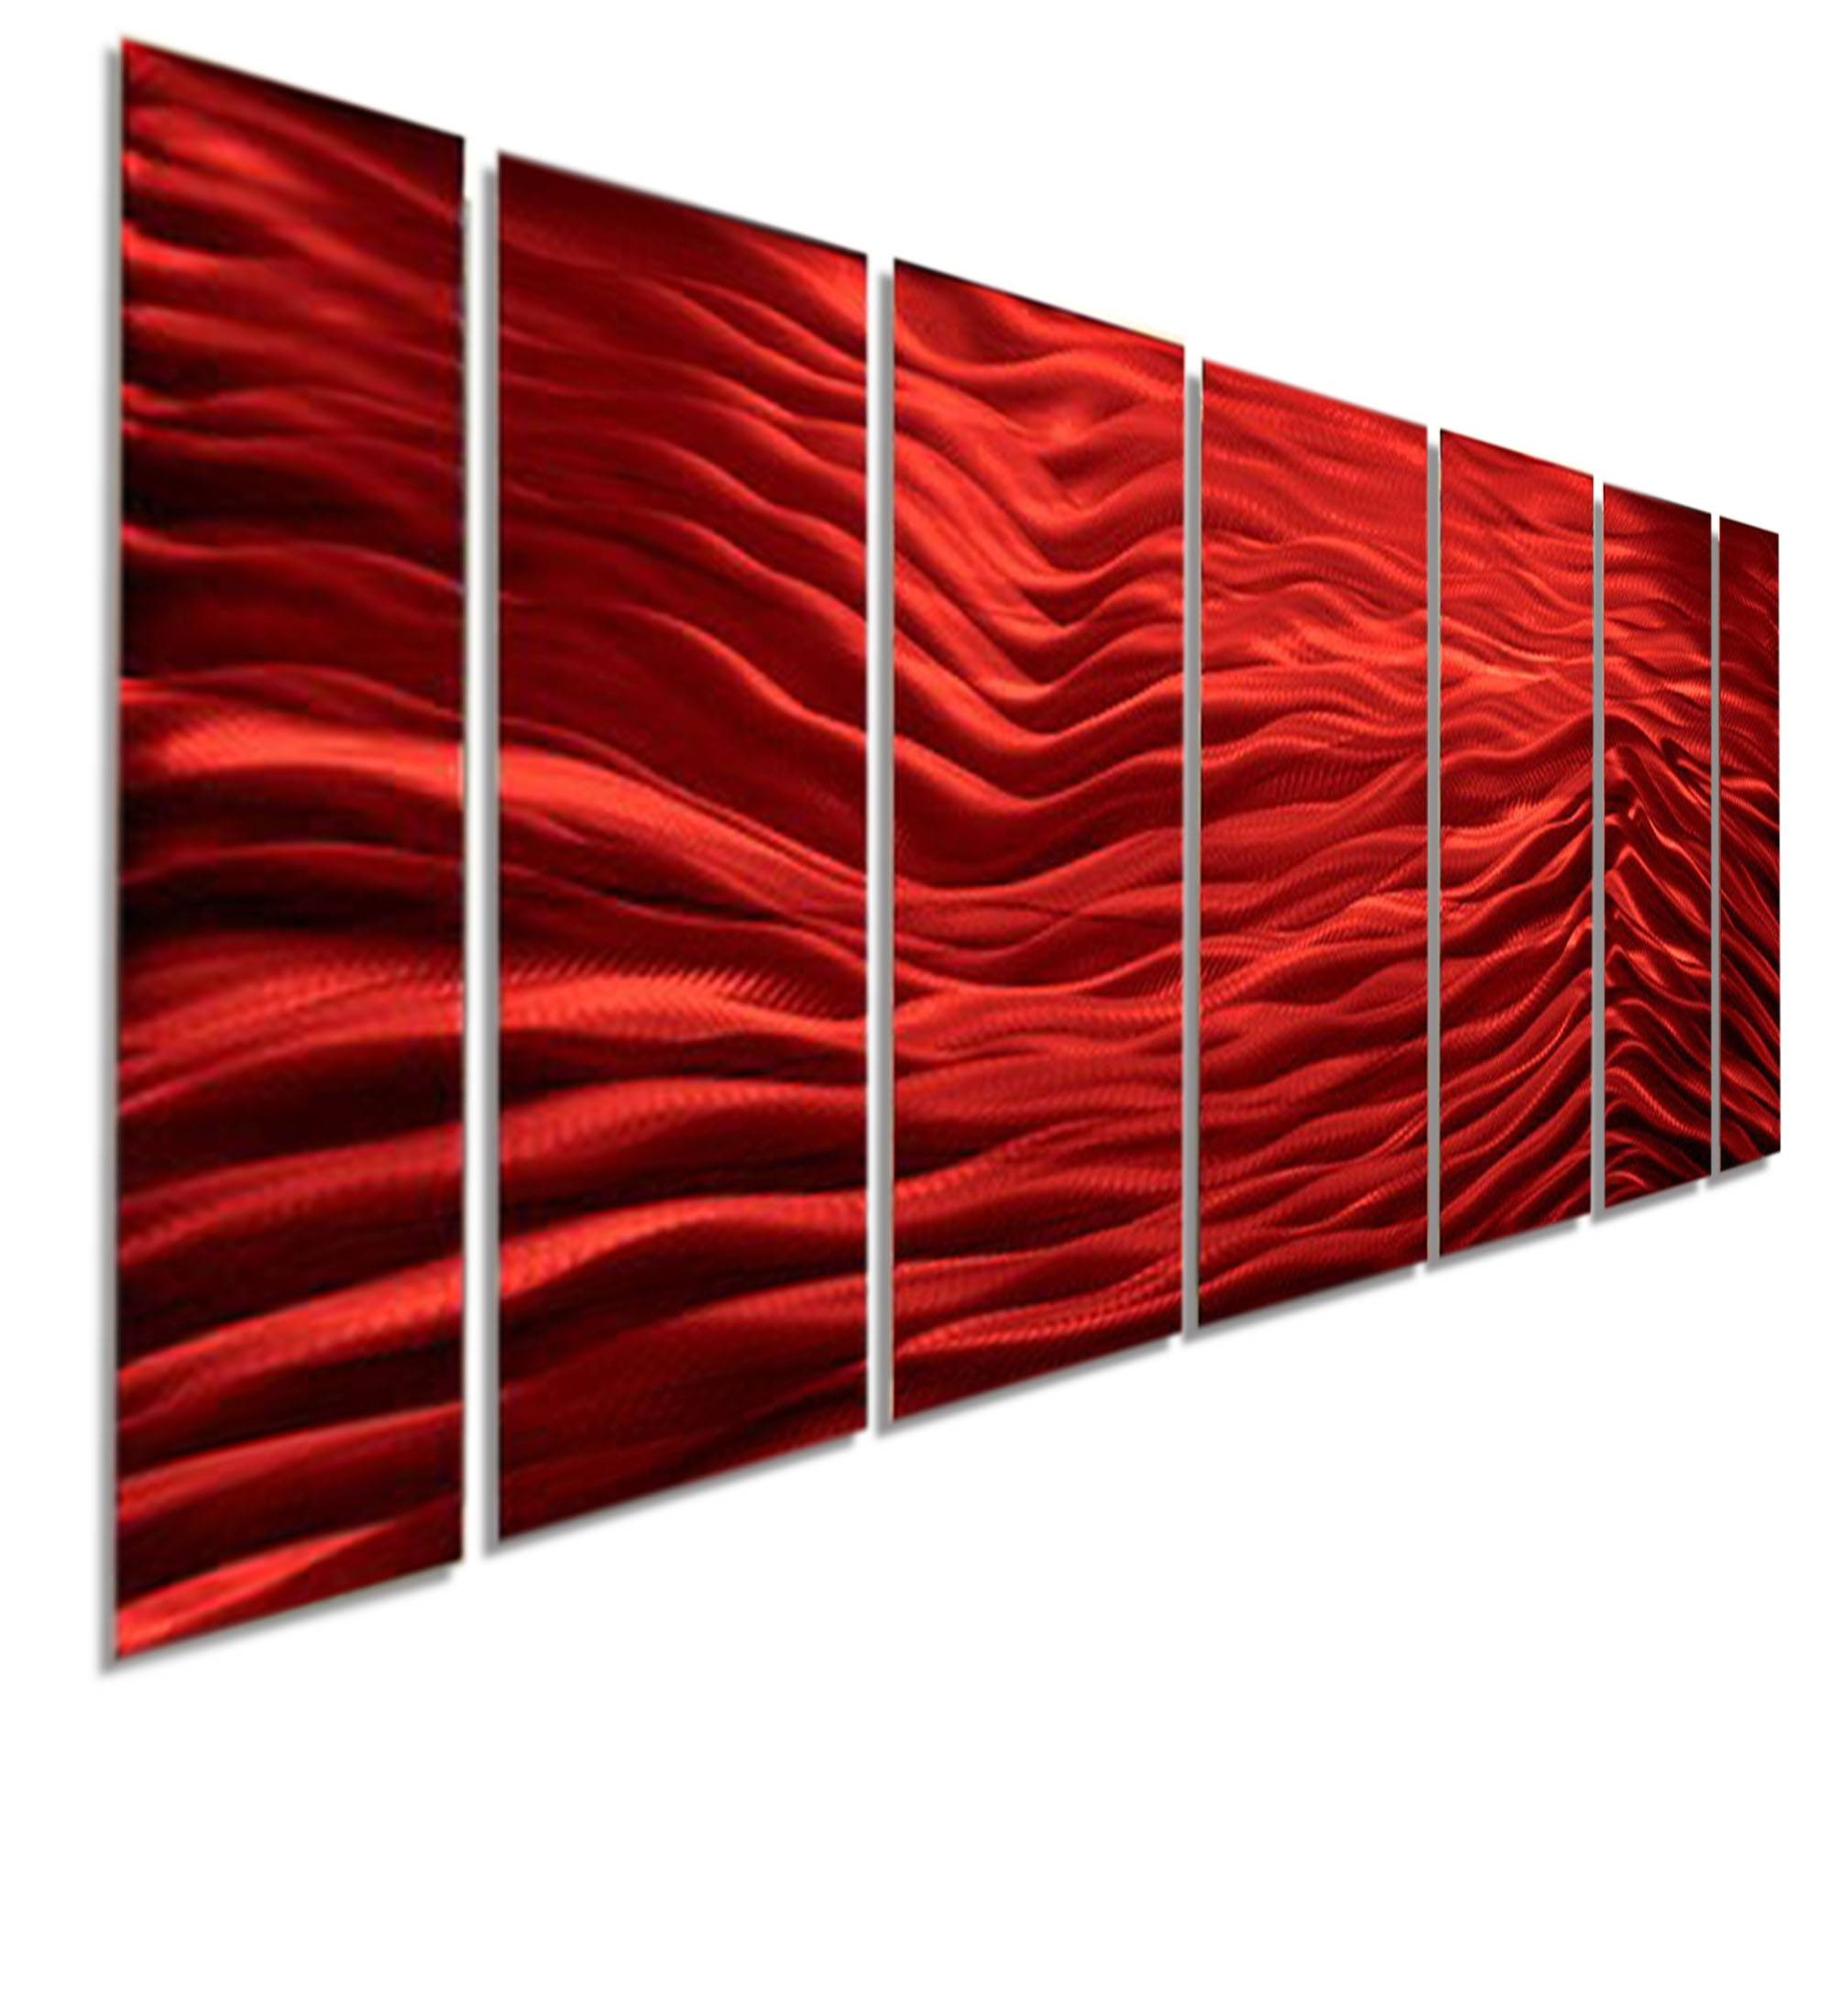 Red Wave Ii Contemporary Metal Wall Sculptureartist Jon Allen Within Most Popular Large Abstract Metal Wall Art (Gallery 10 of 20)